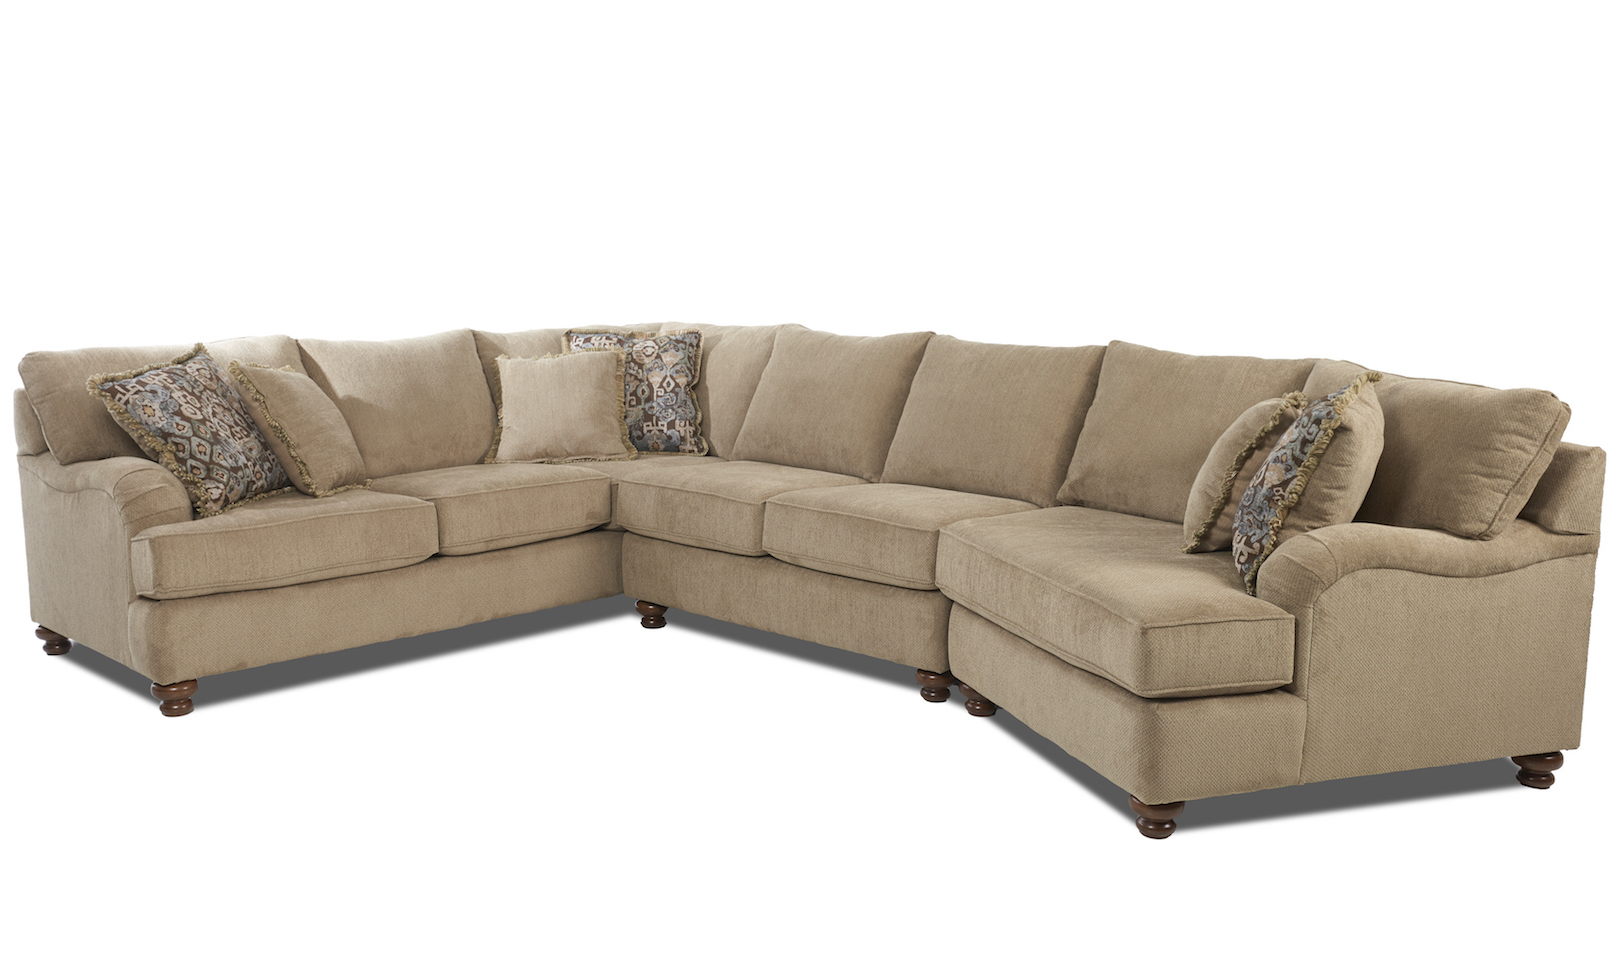 Klaussner | Sofas and Sectionals